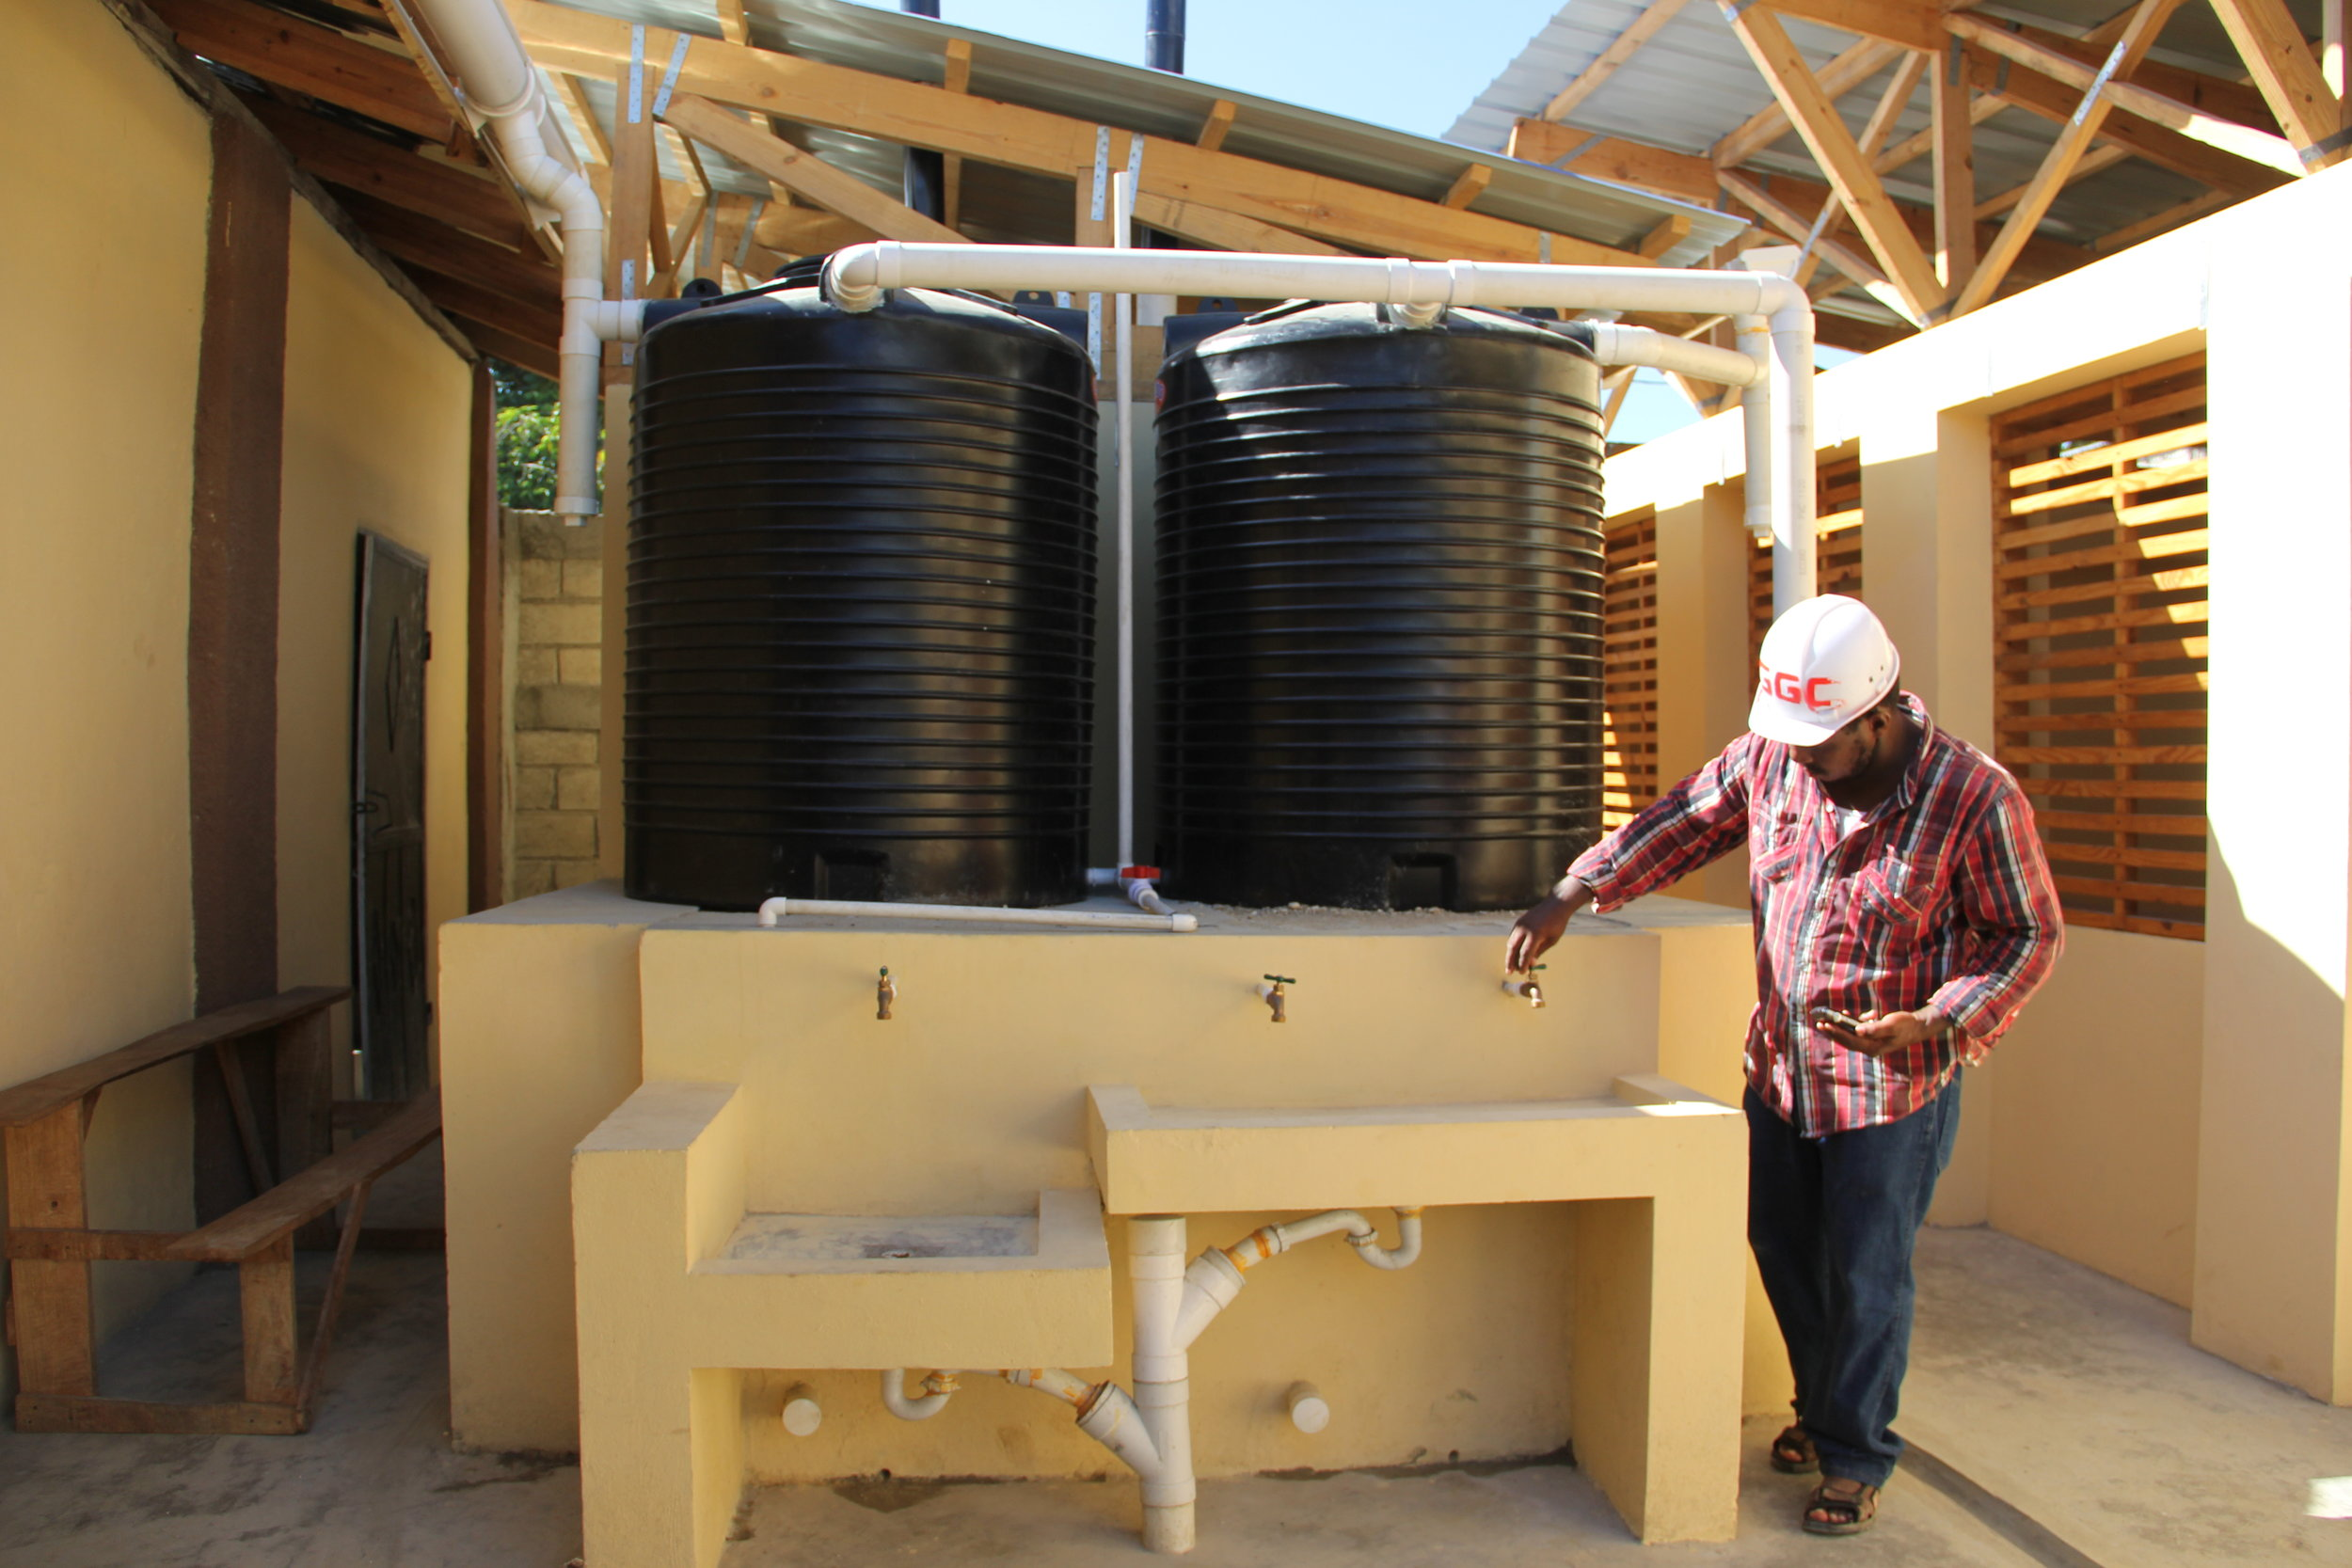 Rain water harvesting tanks and sinks